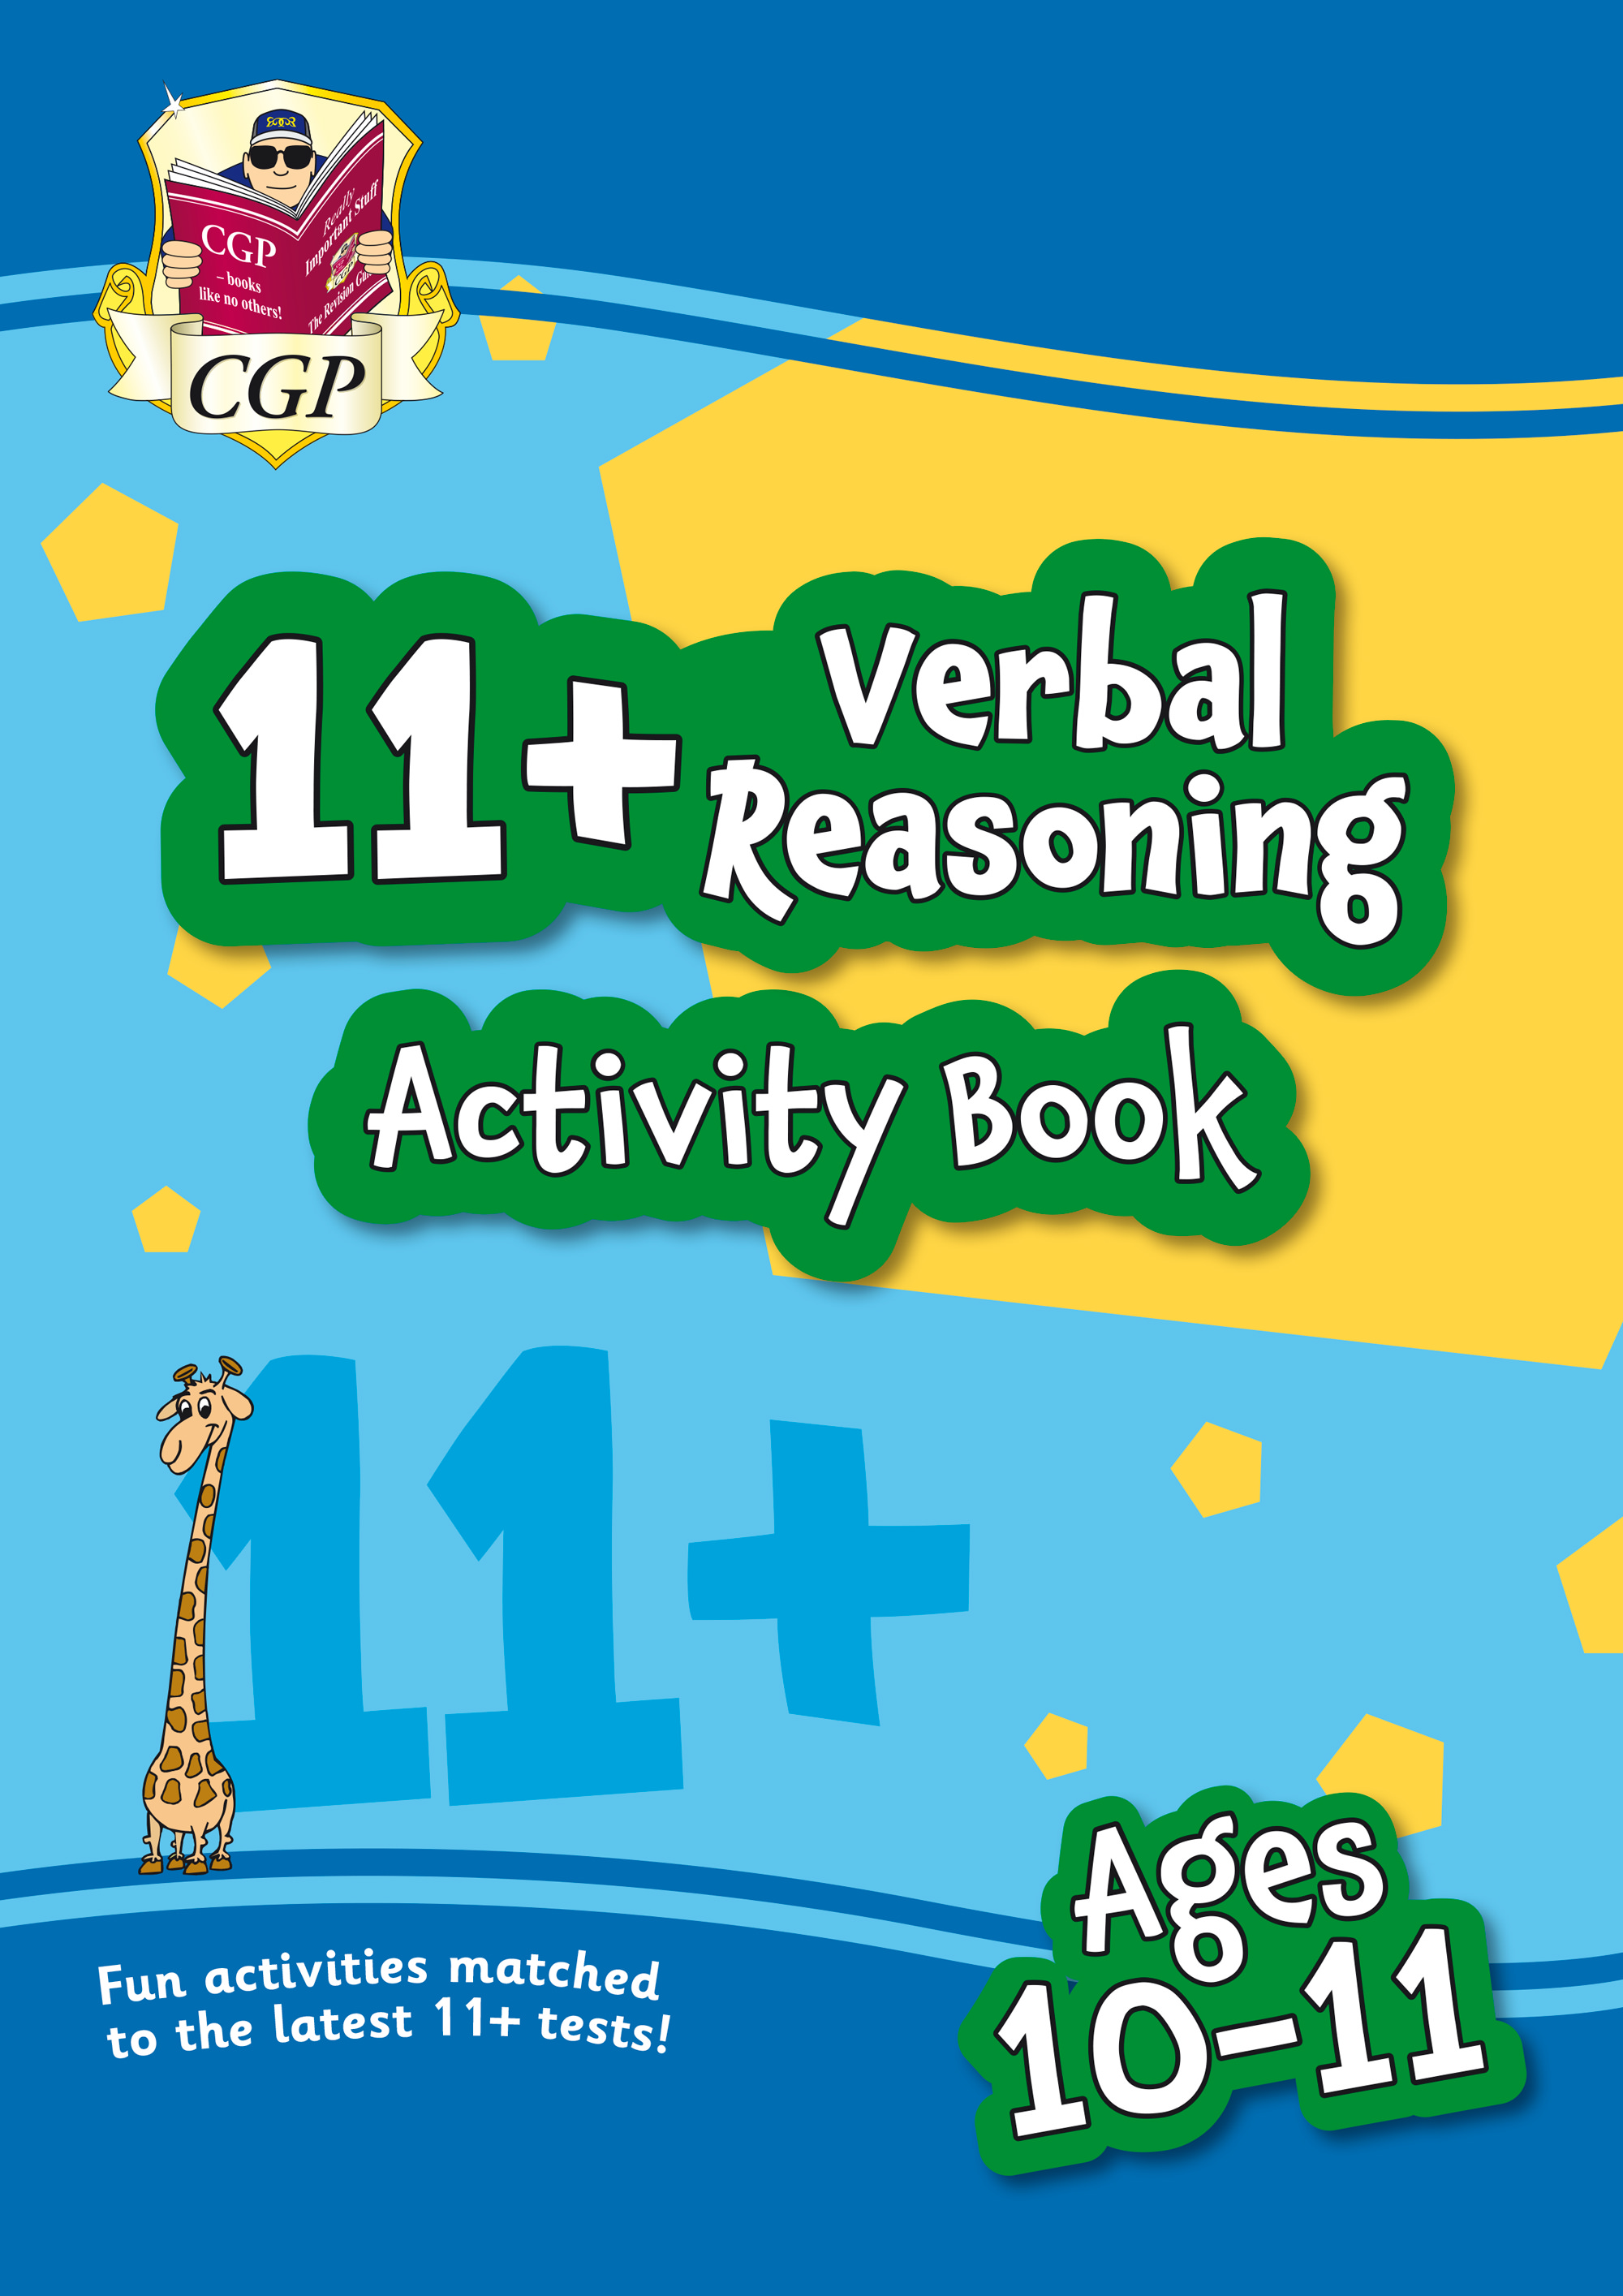 VF6QE1 - New 11+ Activity Book: Verbal Reasoning - Ages 10-11